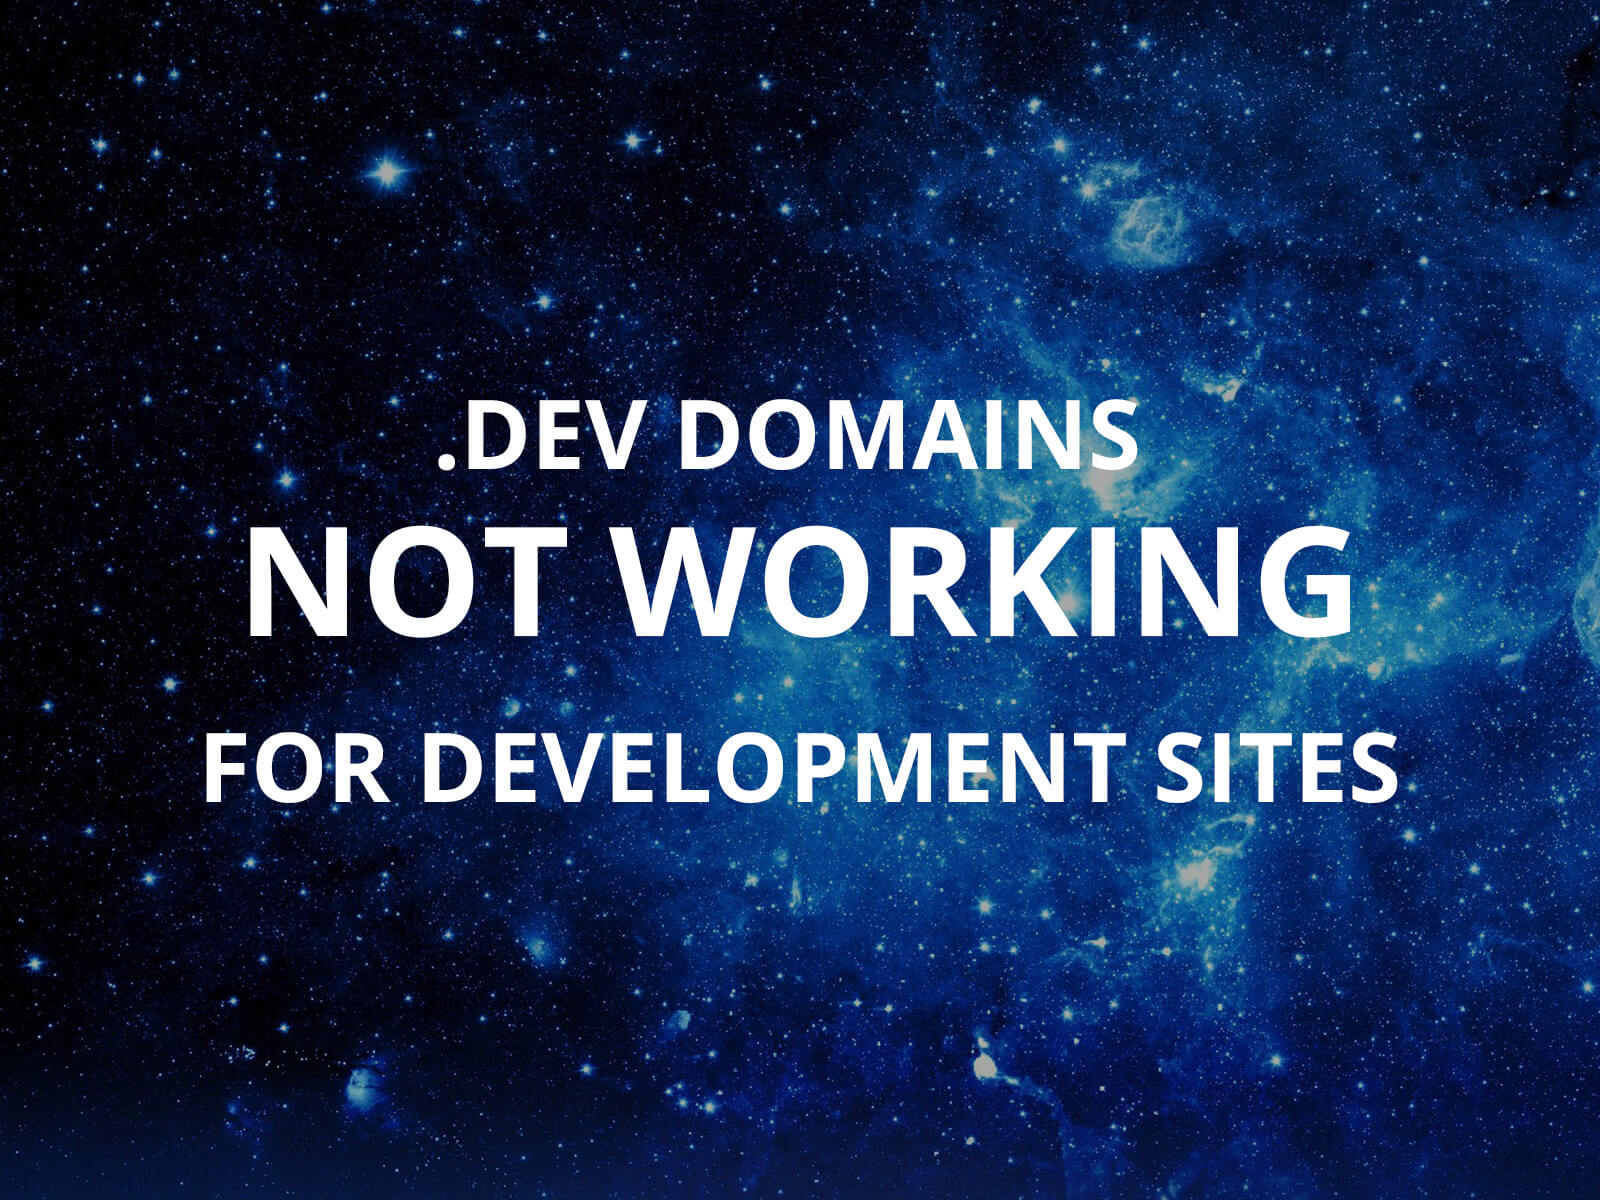 Dev domains not working for development site